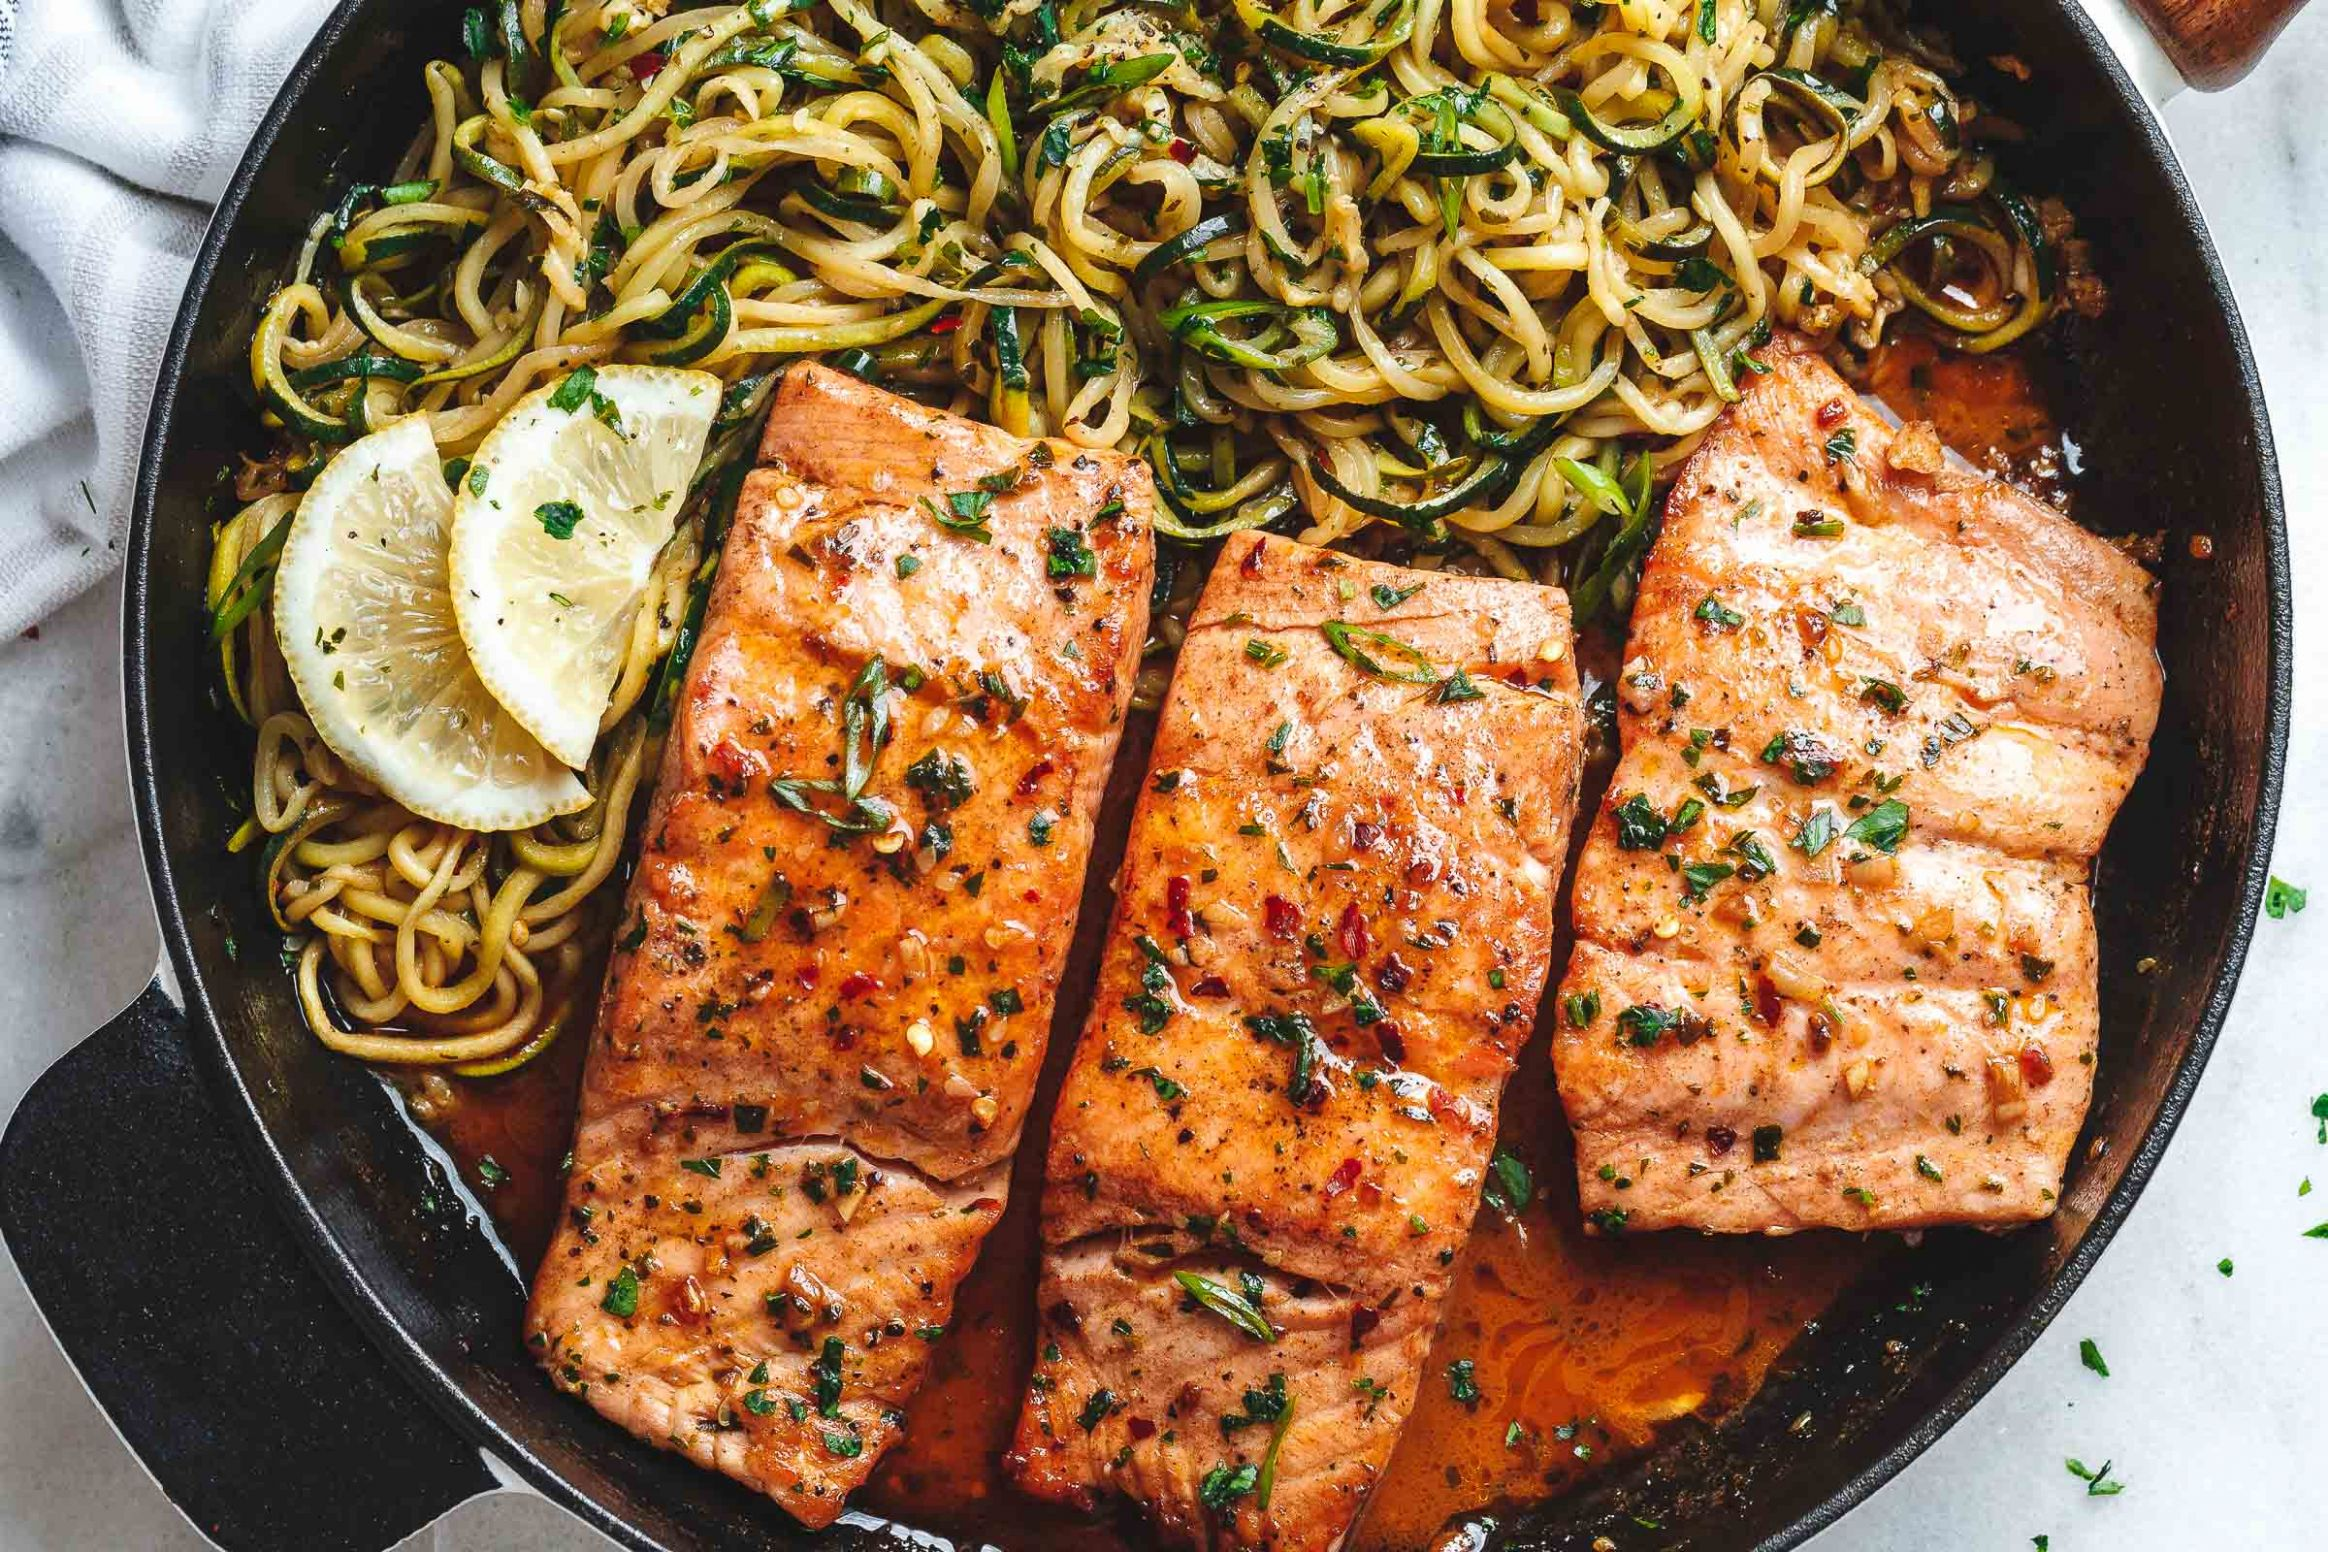 Lemon Garlic Butter Salmon with Zucchini Noodles - Fish Recipes With Zucchini